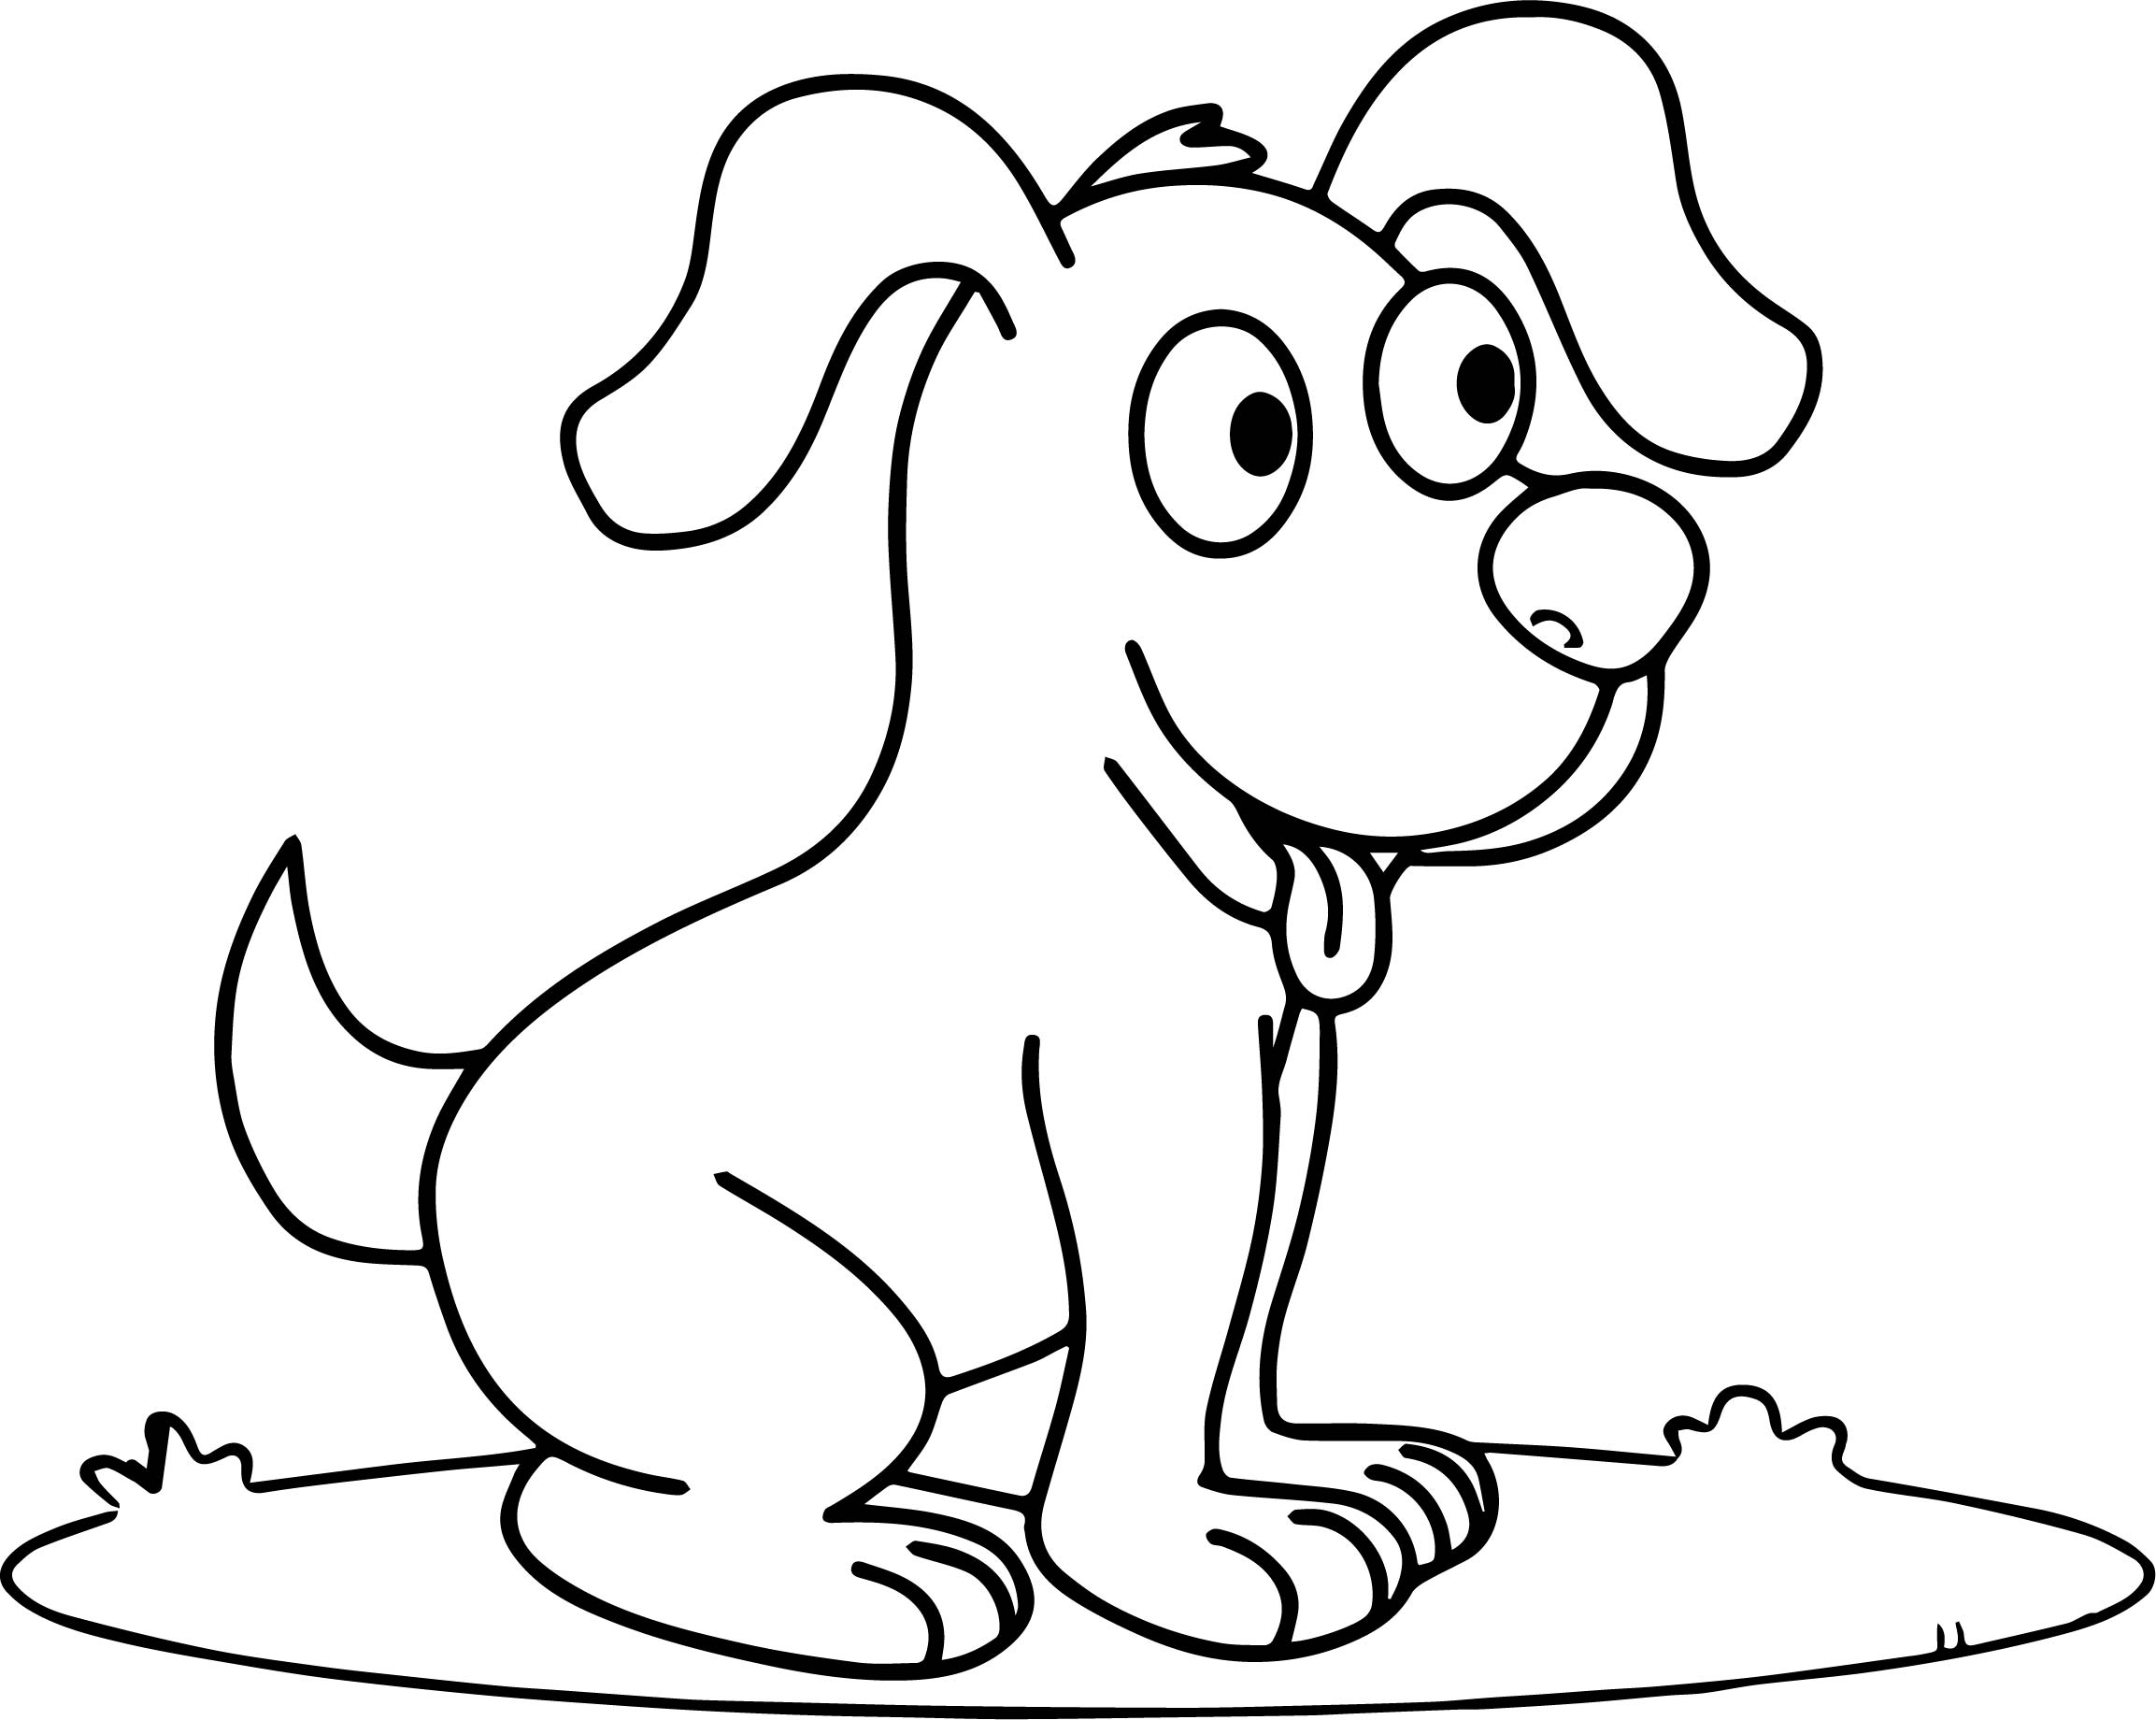 free printable dog coloring pages for kids. download coloring pages ...